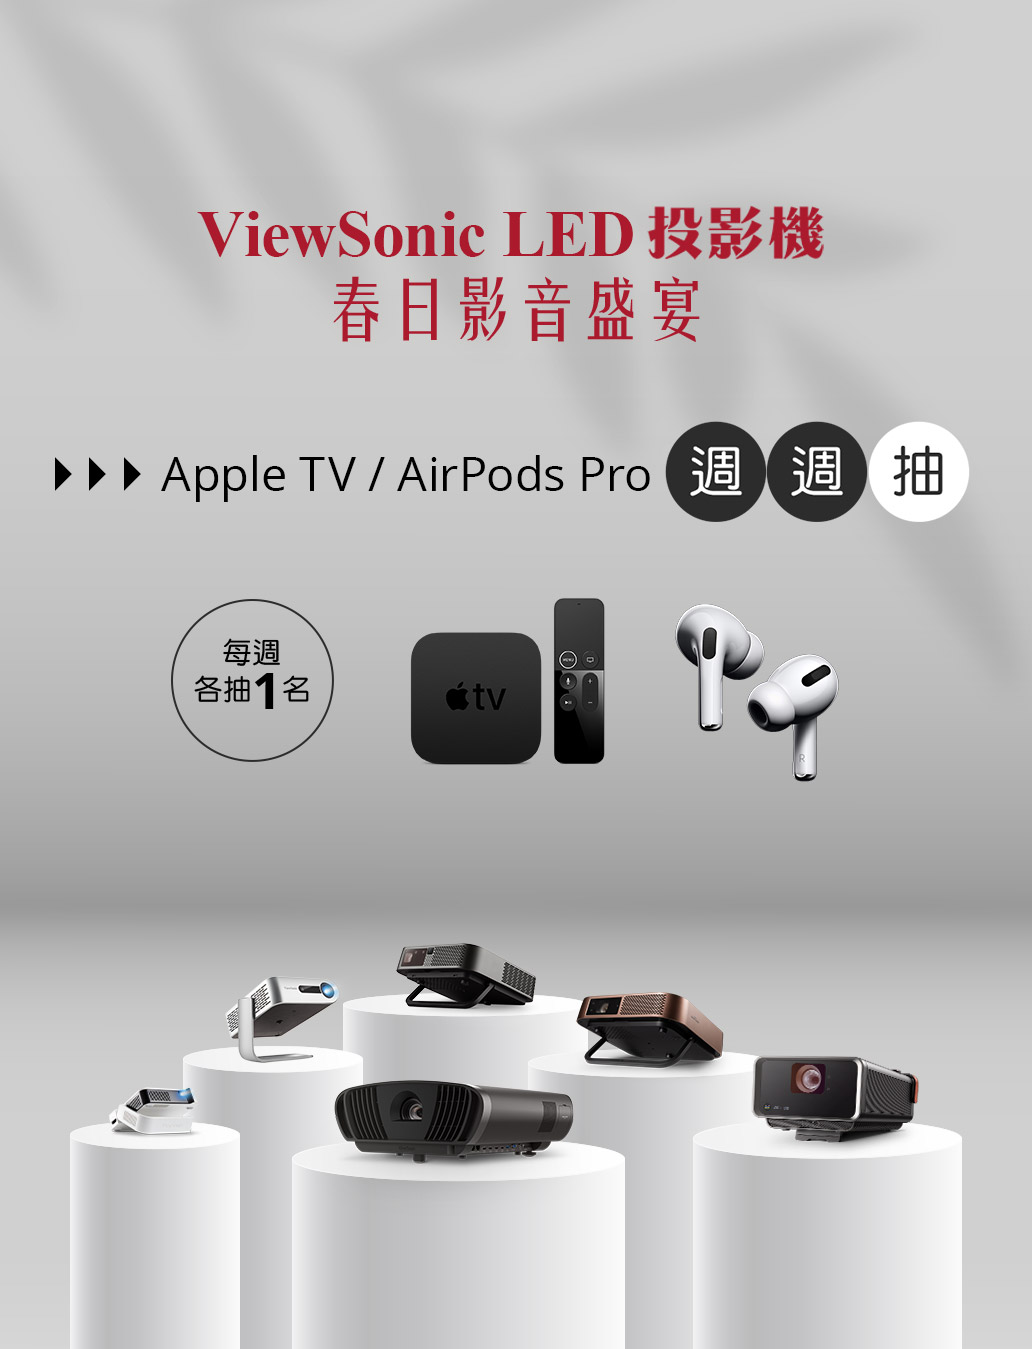 ViewSonic LED projector